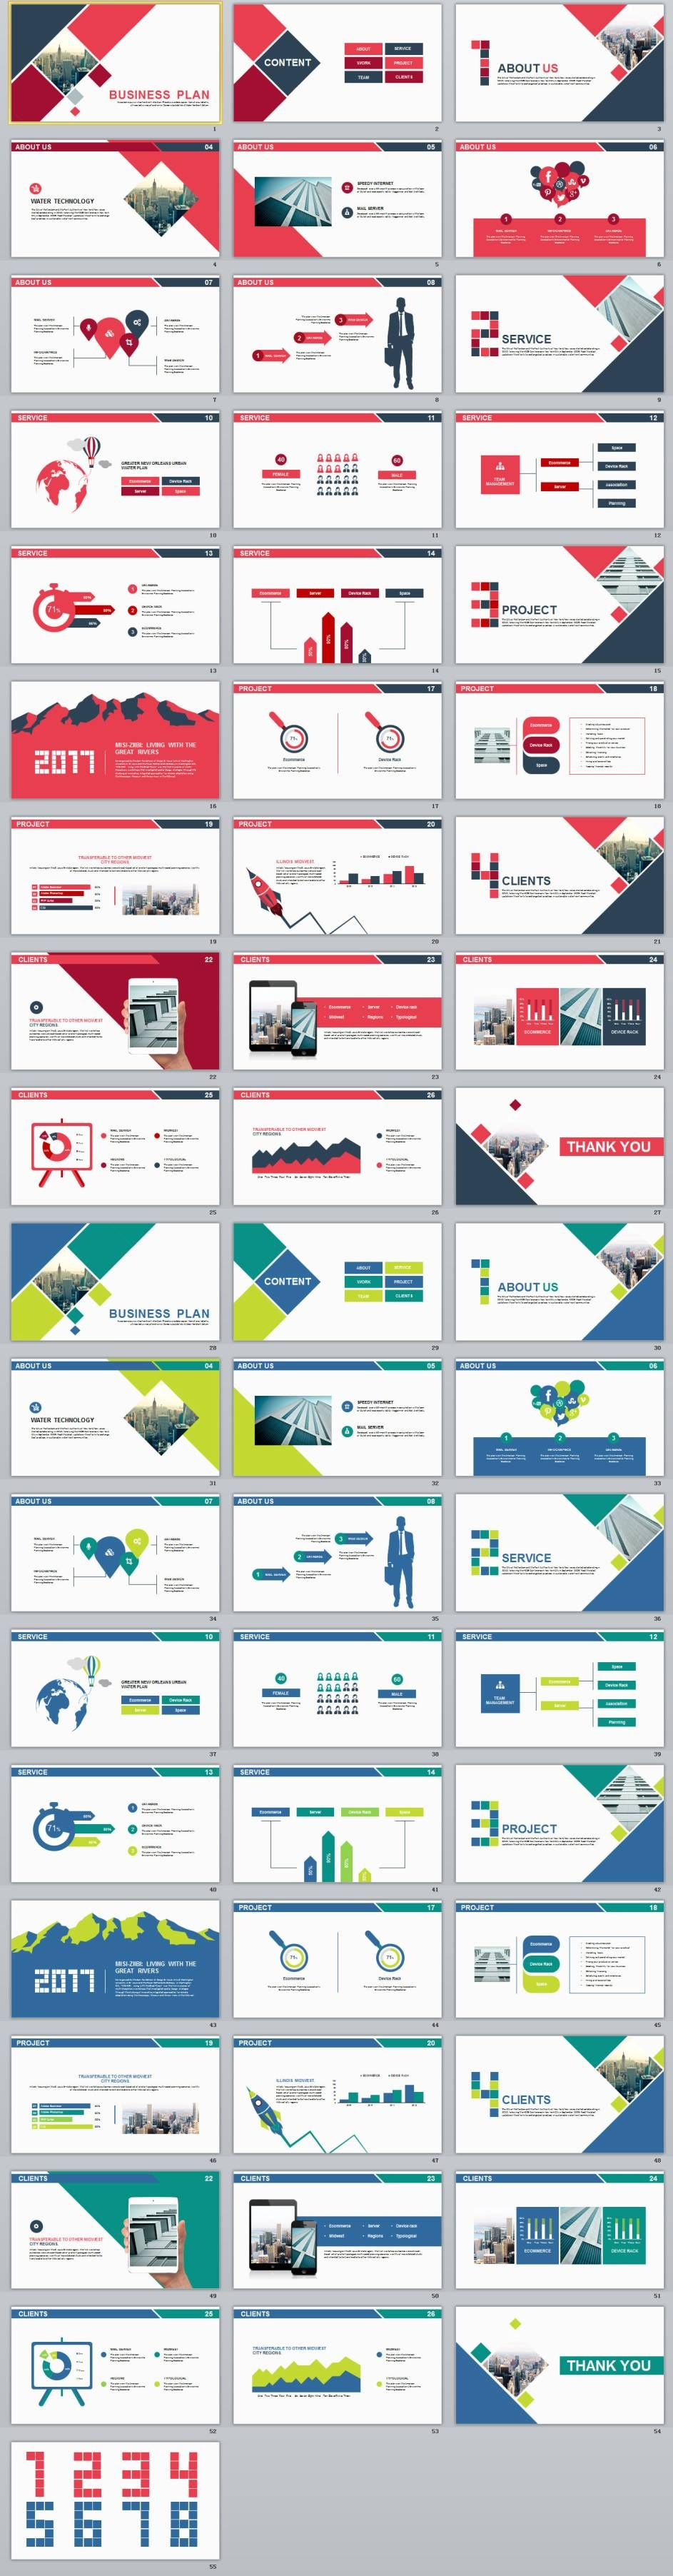 In Simple Business Plan Powerpoint Template  Powerpoint